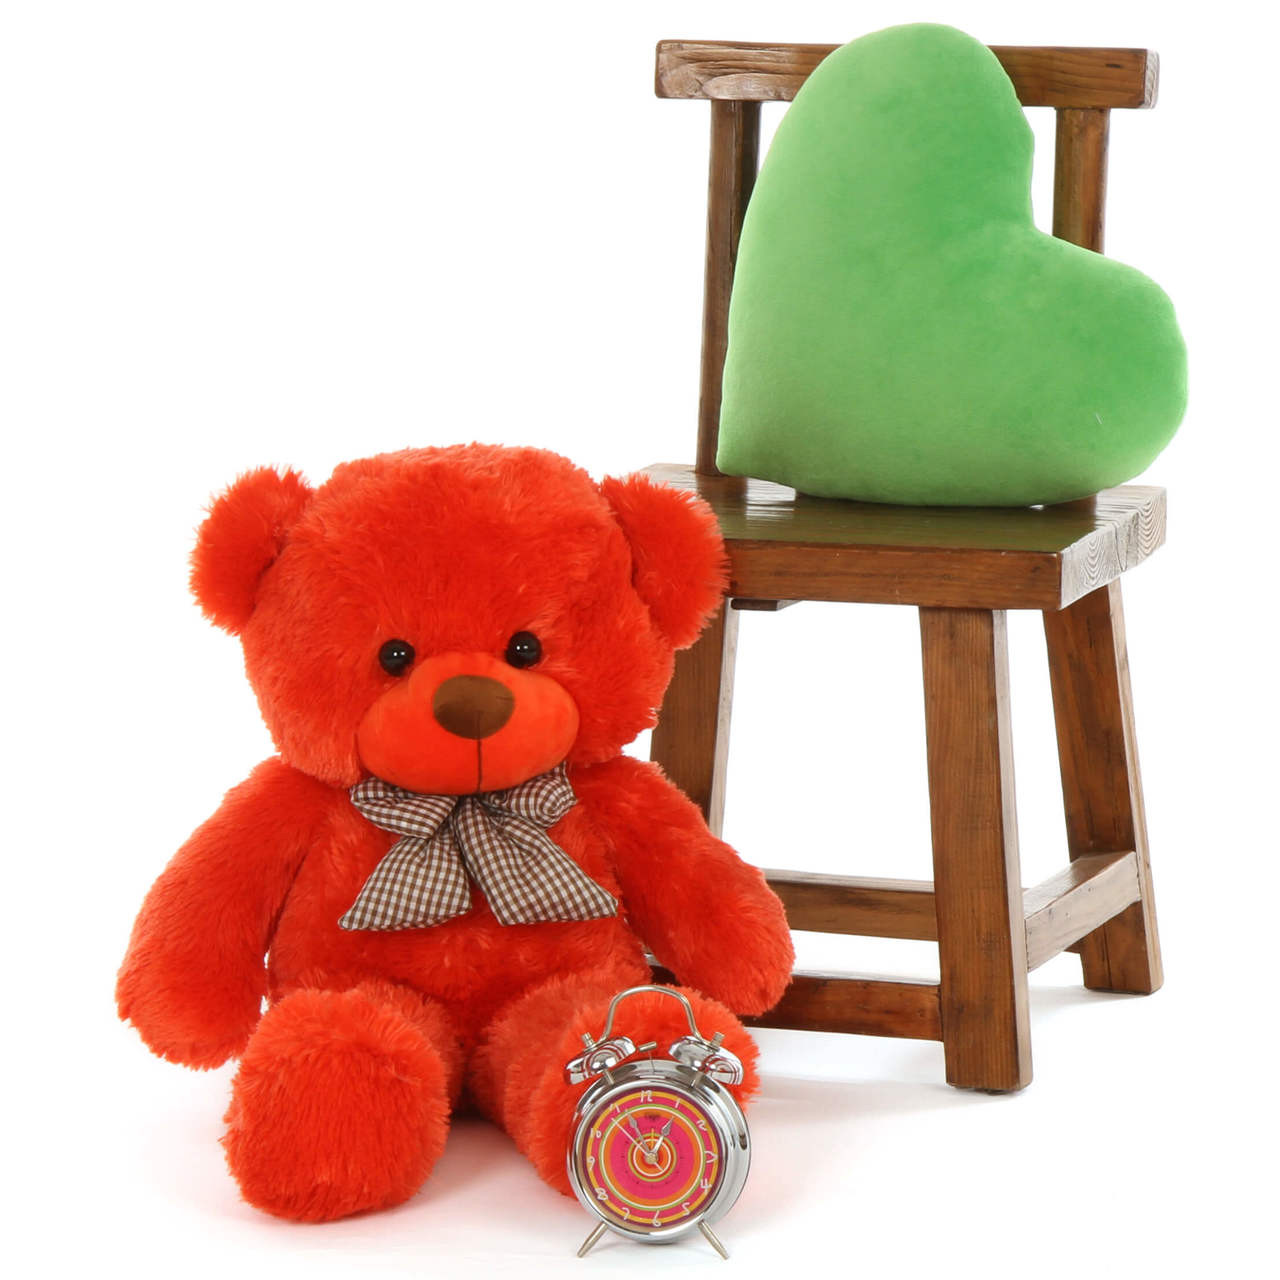 30in Big Teddy Bear Lovey Cute Cuddles Beautiful Orange Red Fur